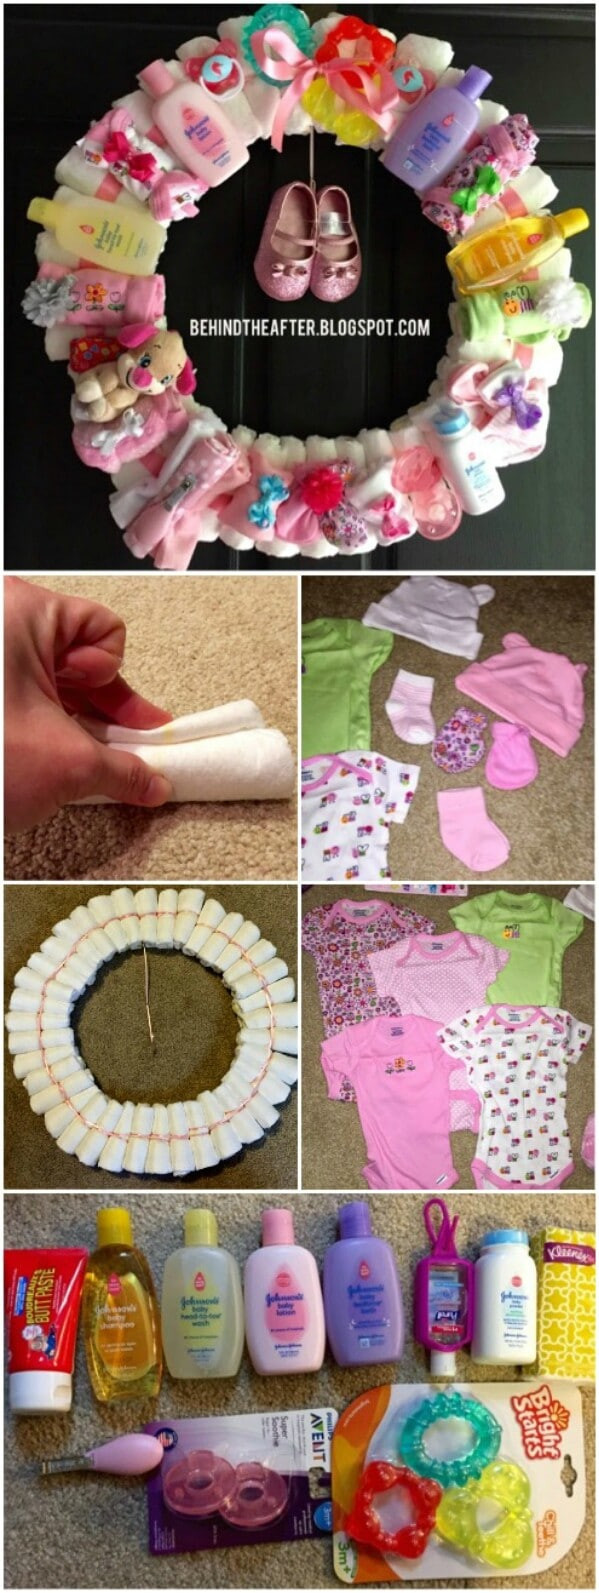 Best ideas about Baby Shower Gift Ideas DIY . Save or Pin 25 Enchantingly Adorable Baby Shower Gift Ideas That Will Now.